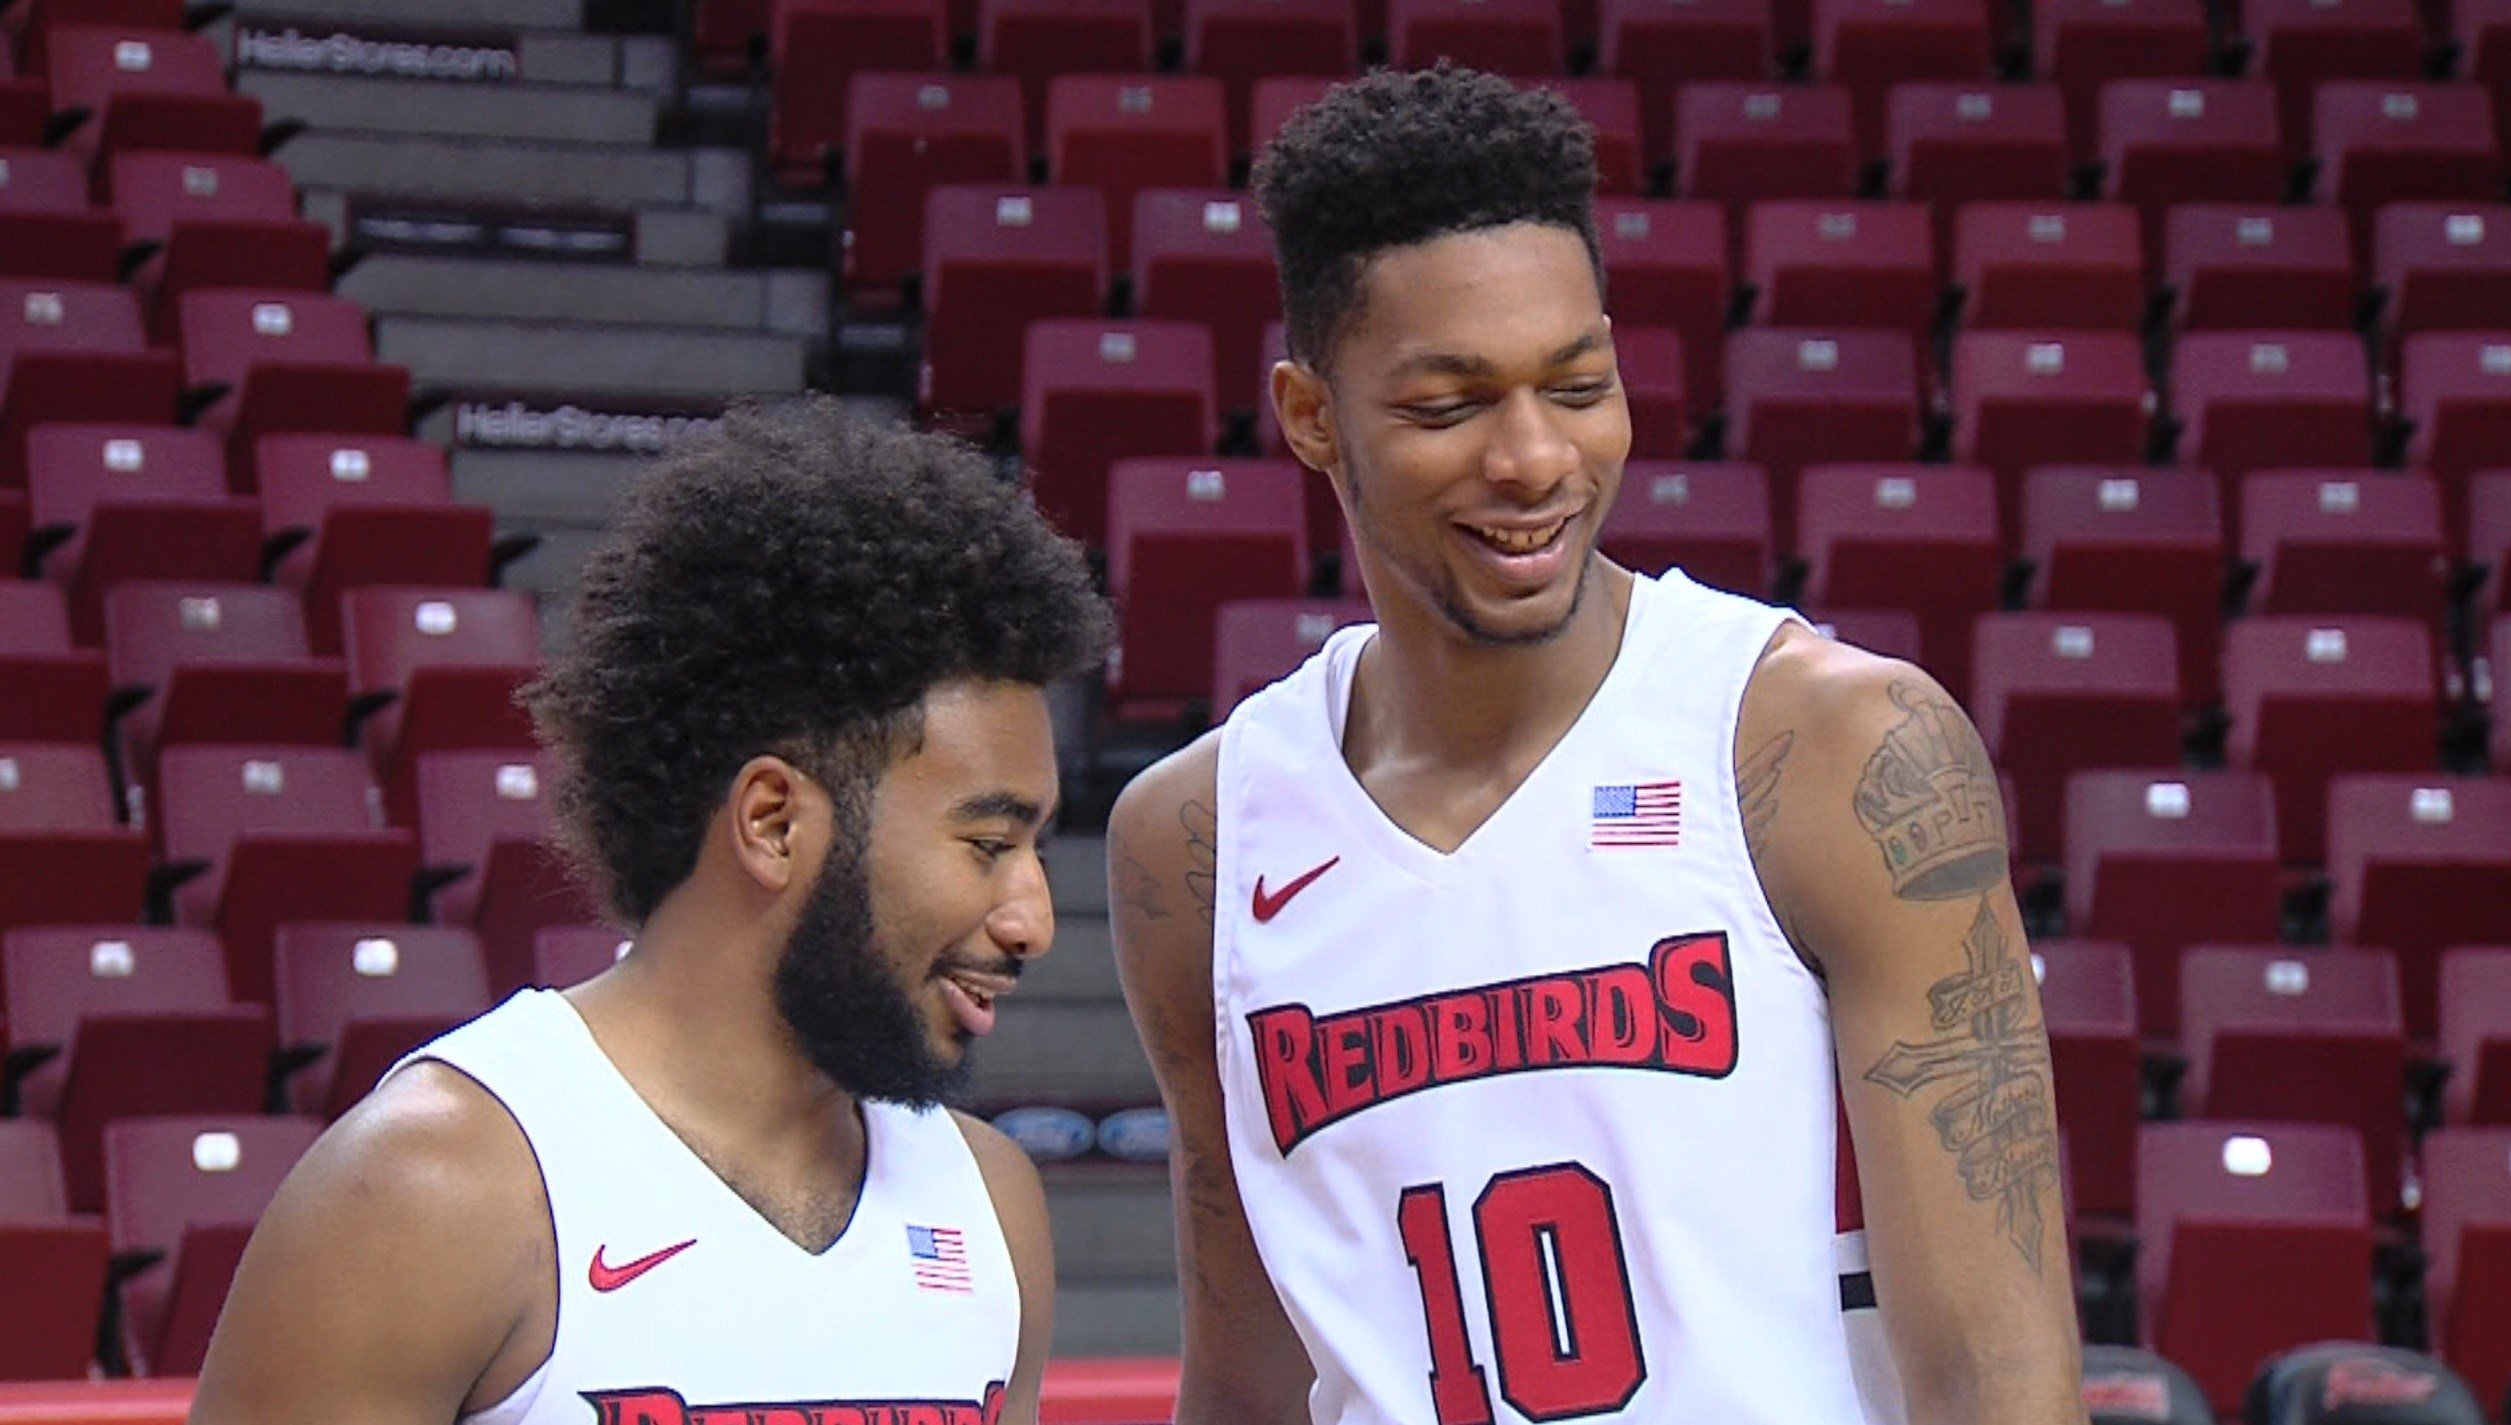 Keyshawn Evans (left) and Phil Fayne are the only returning Illinois State players who started a game for the Rebirds last season. Evans started four, while Fayne started 34 of 35 games.